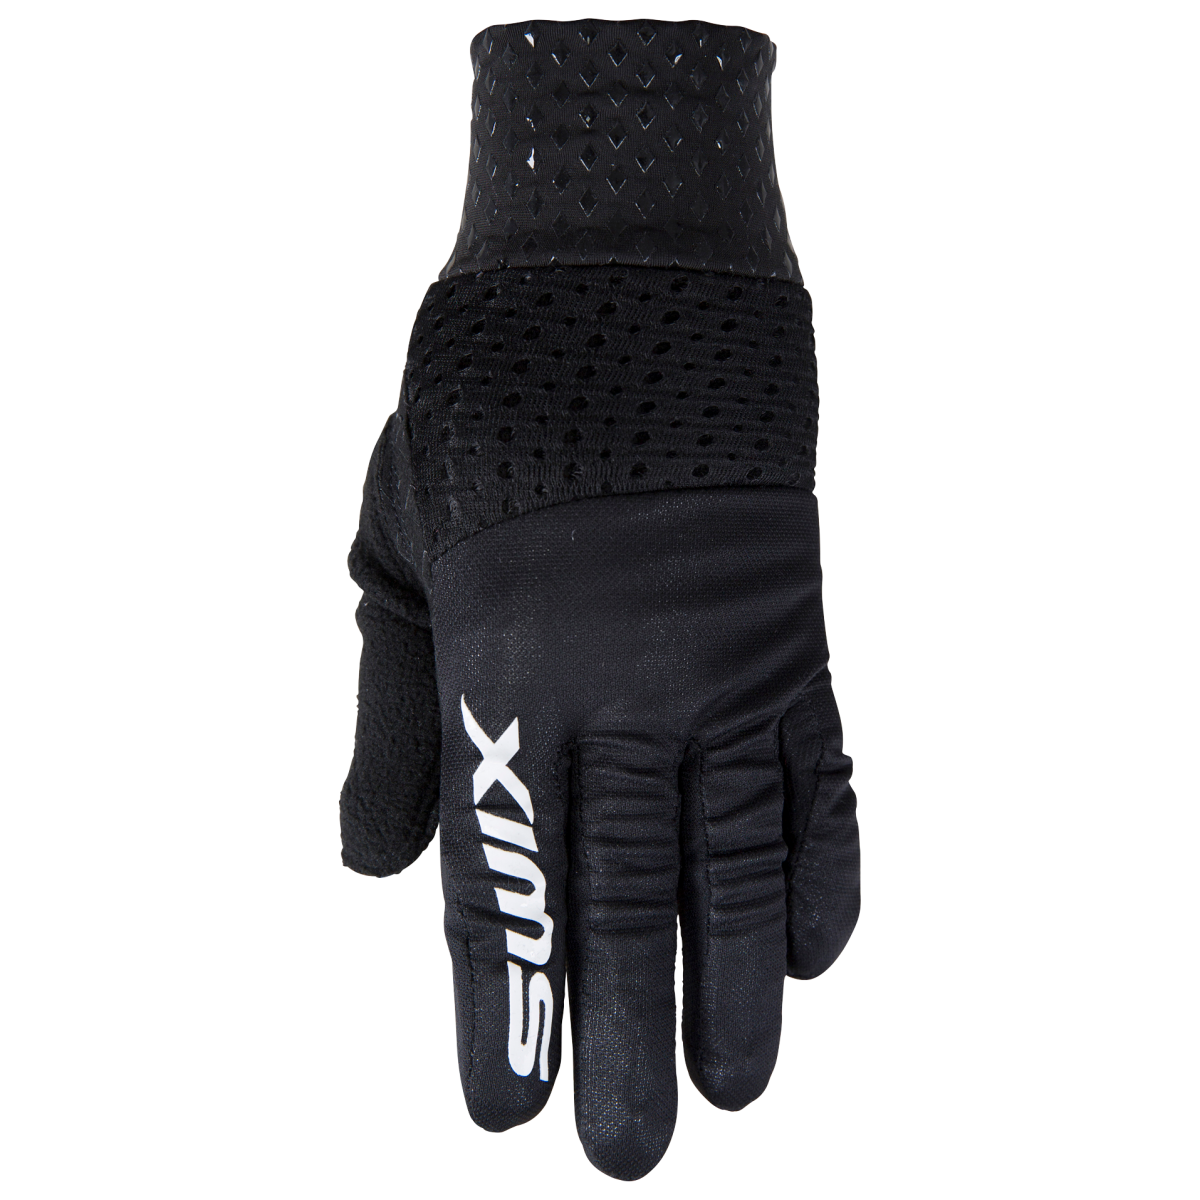 Swix  Swix Triac Warm Glove Womens